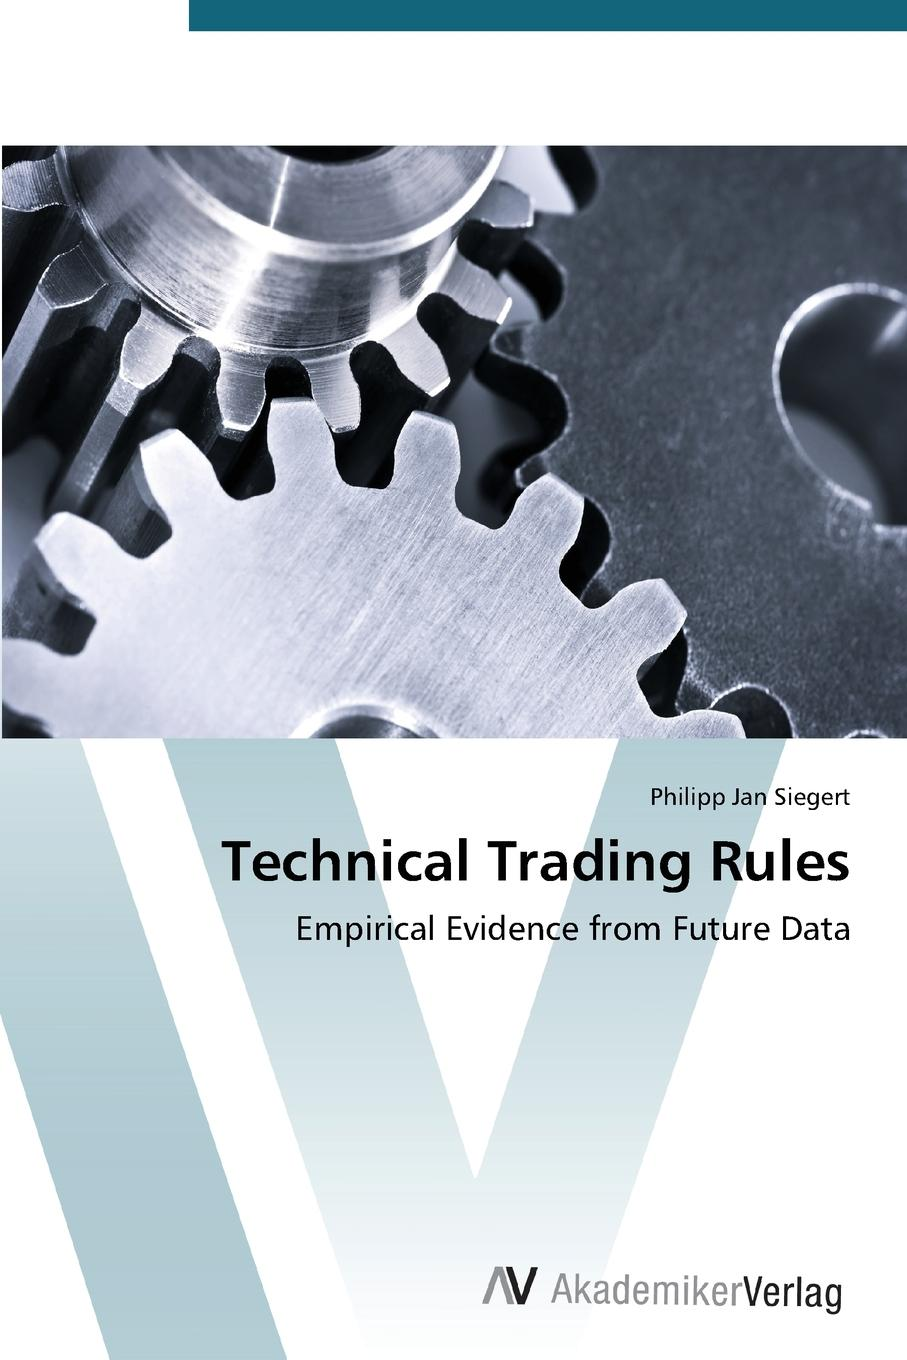 Siegert Philipp Jan Technical Trading Rules michael archer d the forex chartist companion a visual approach to technical analysis